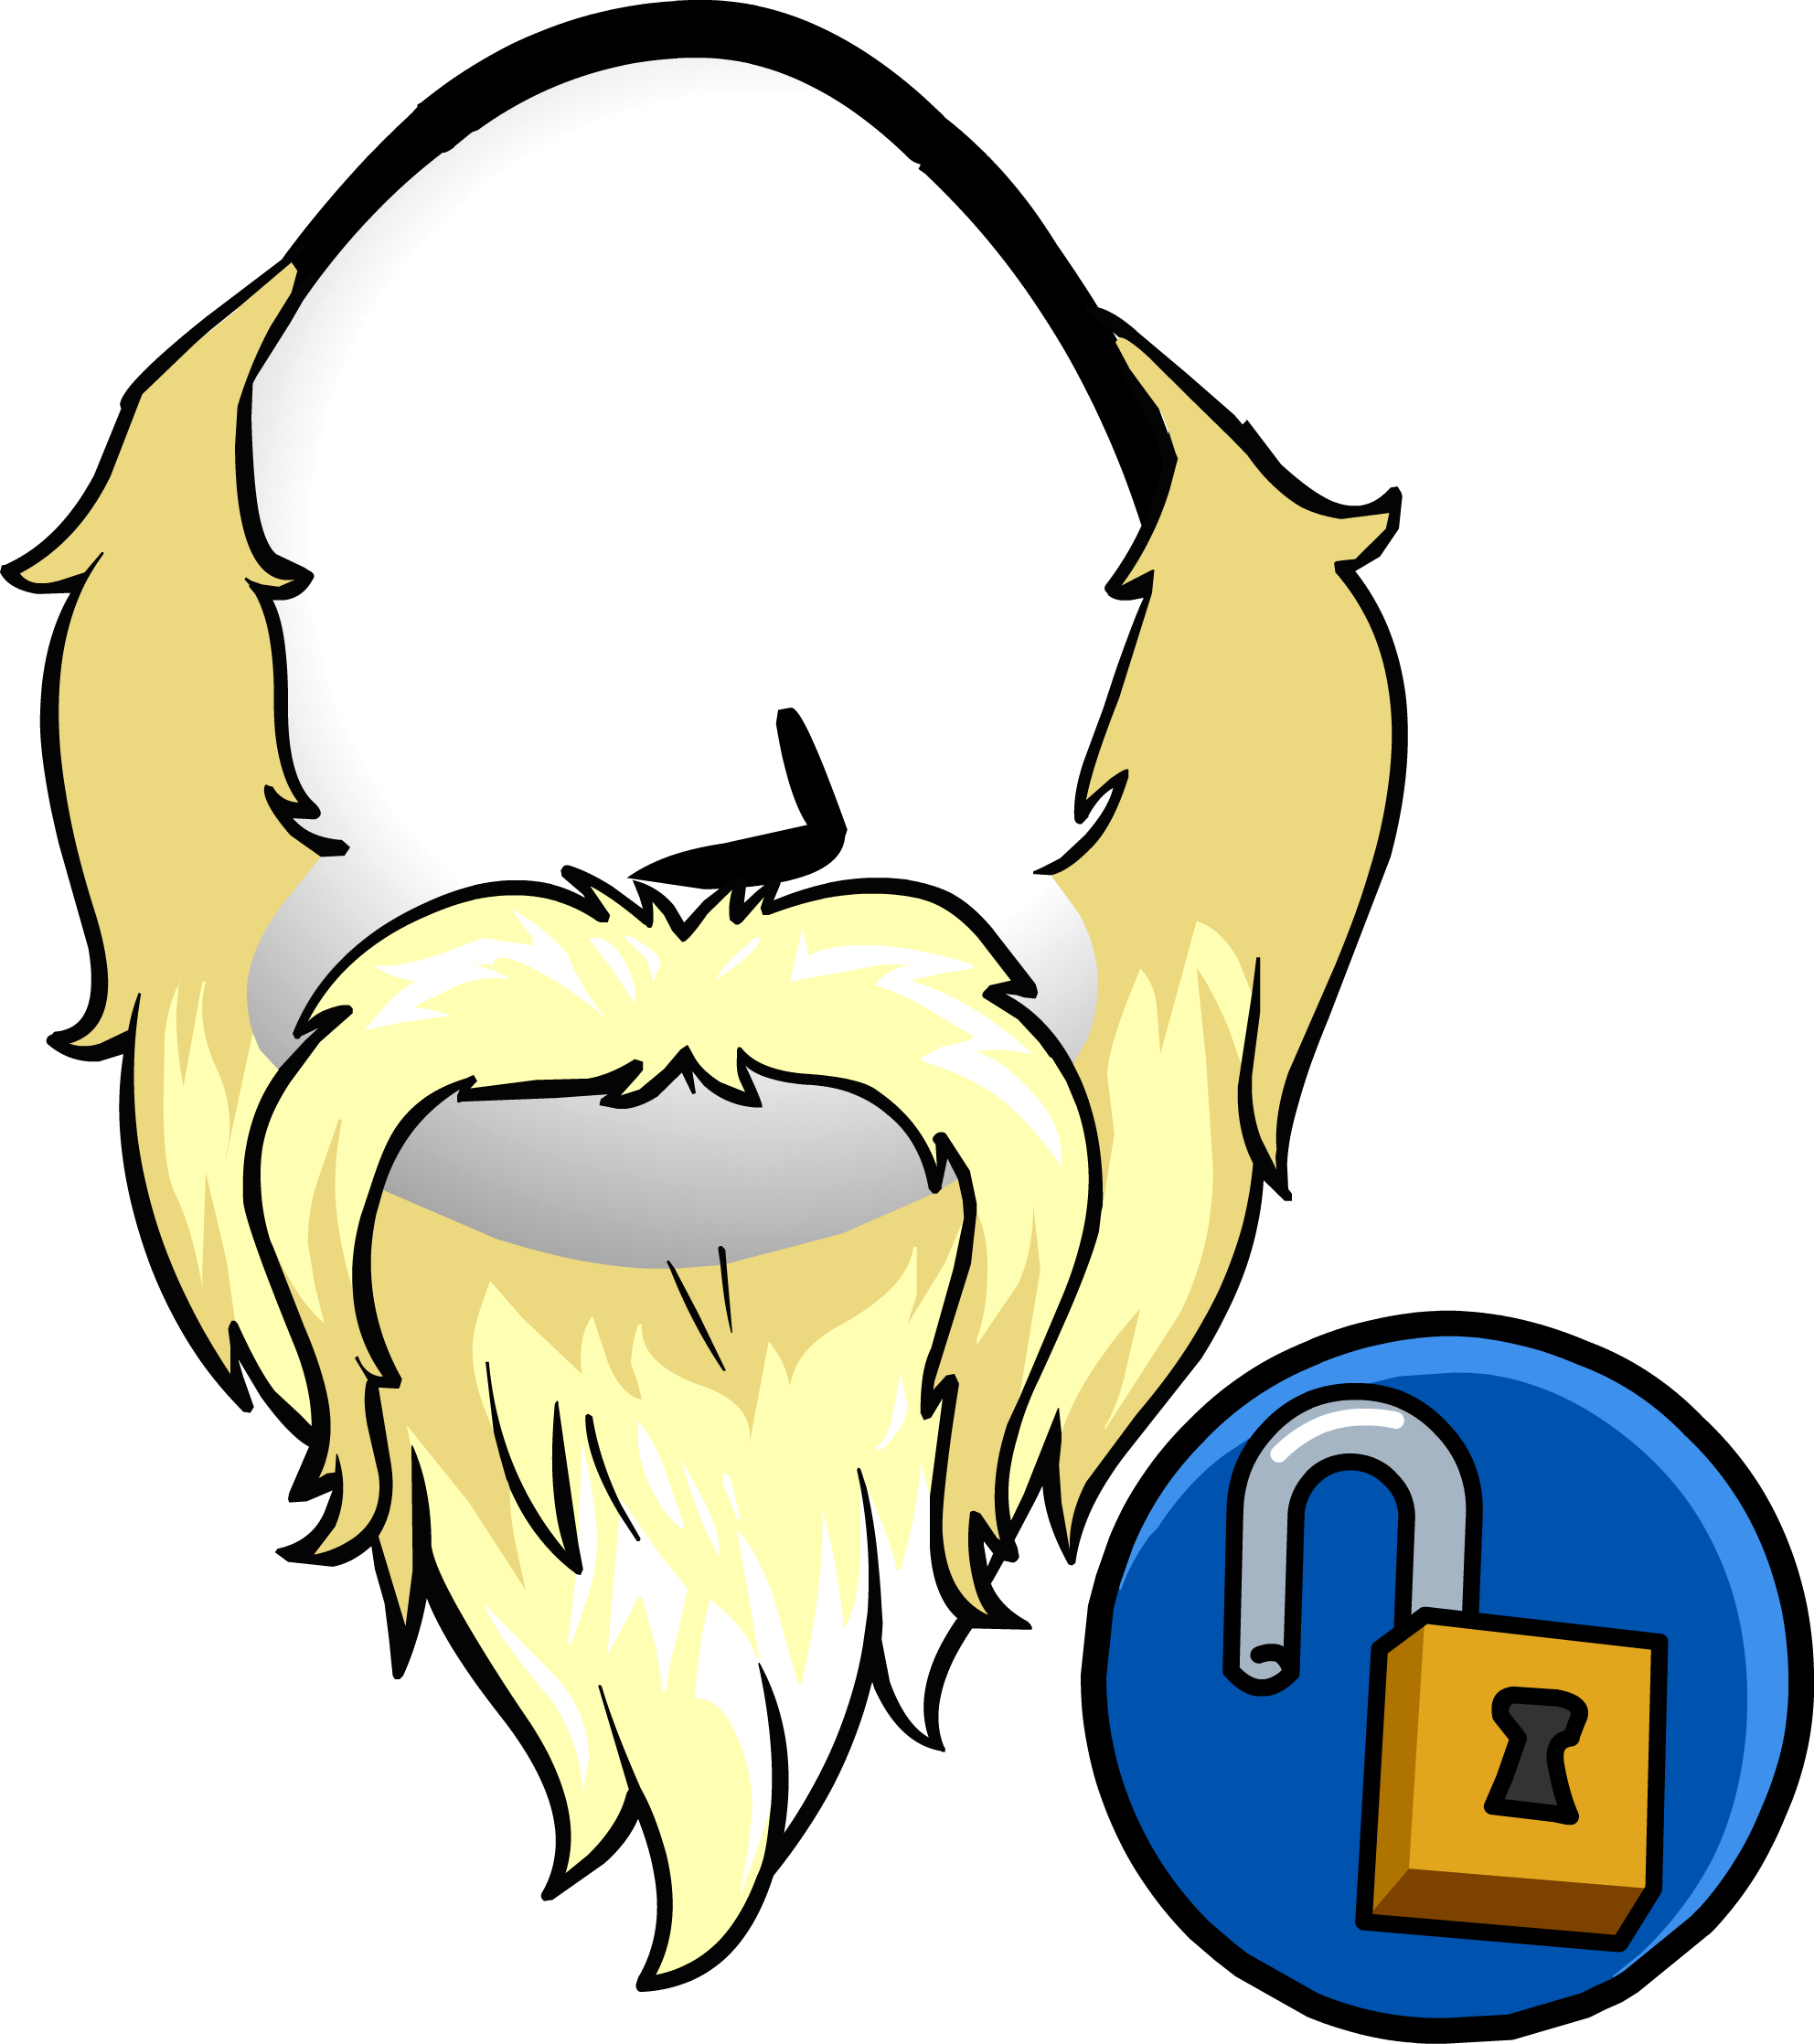 clipart library download Club penguin wiki fandom. Beard clipart viking